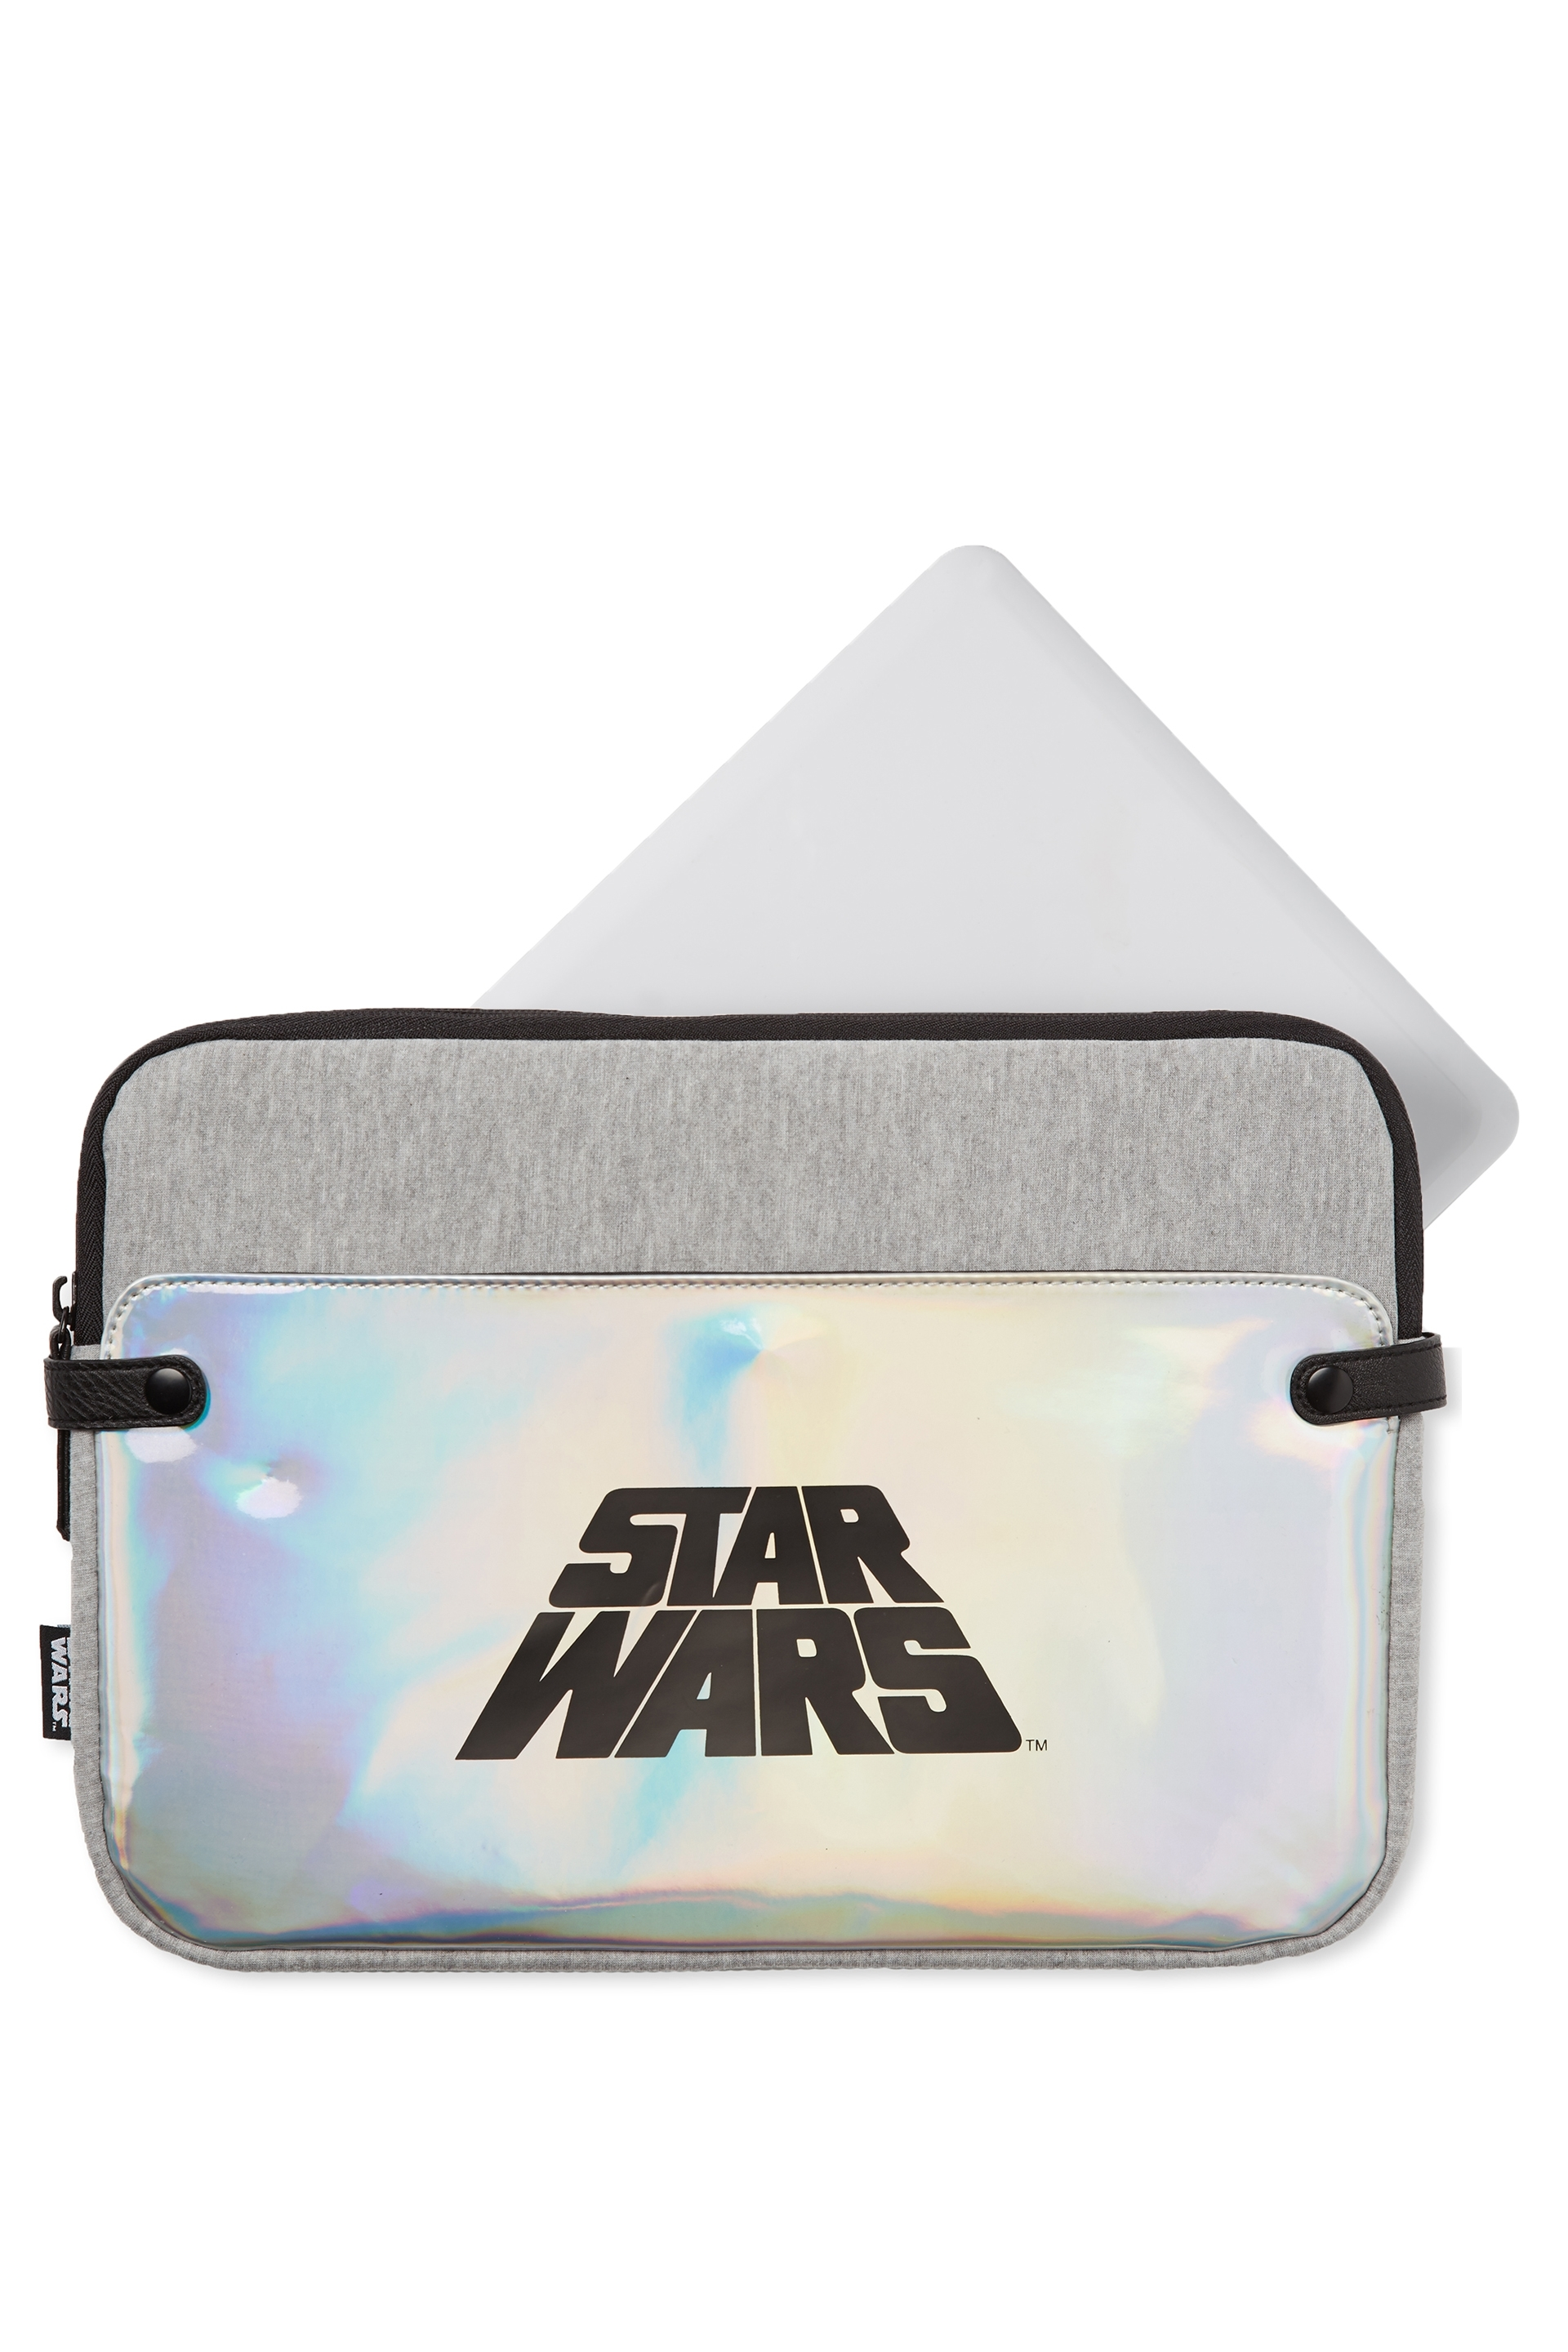 Typo - Varsity Laptop Case 13 Inch - Lcn star wars holographic